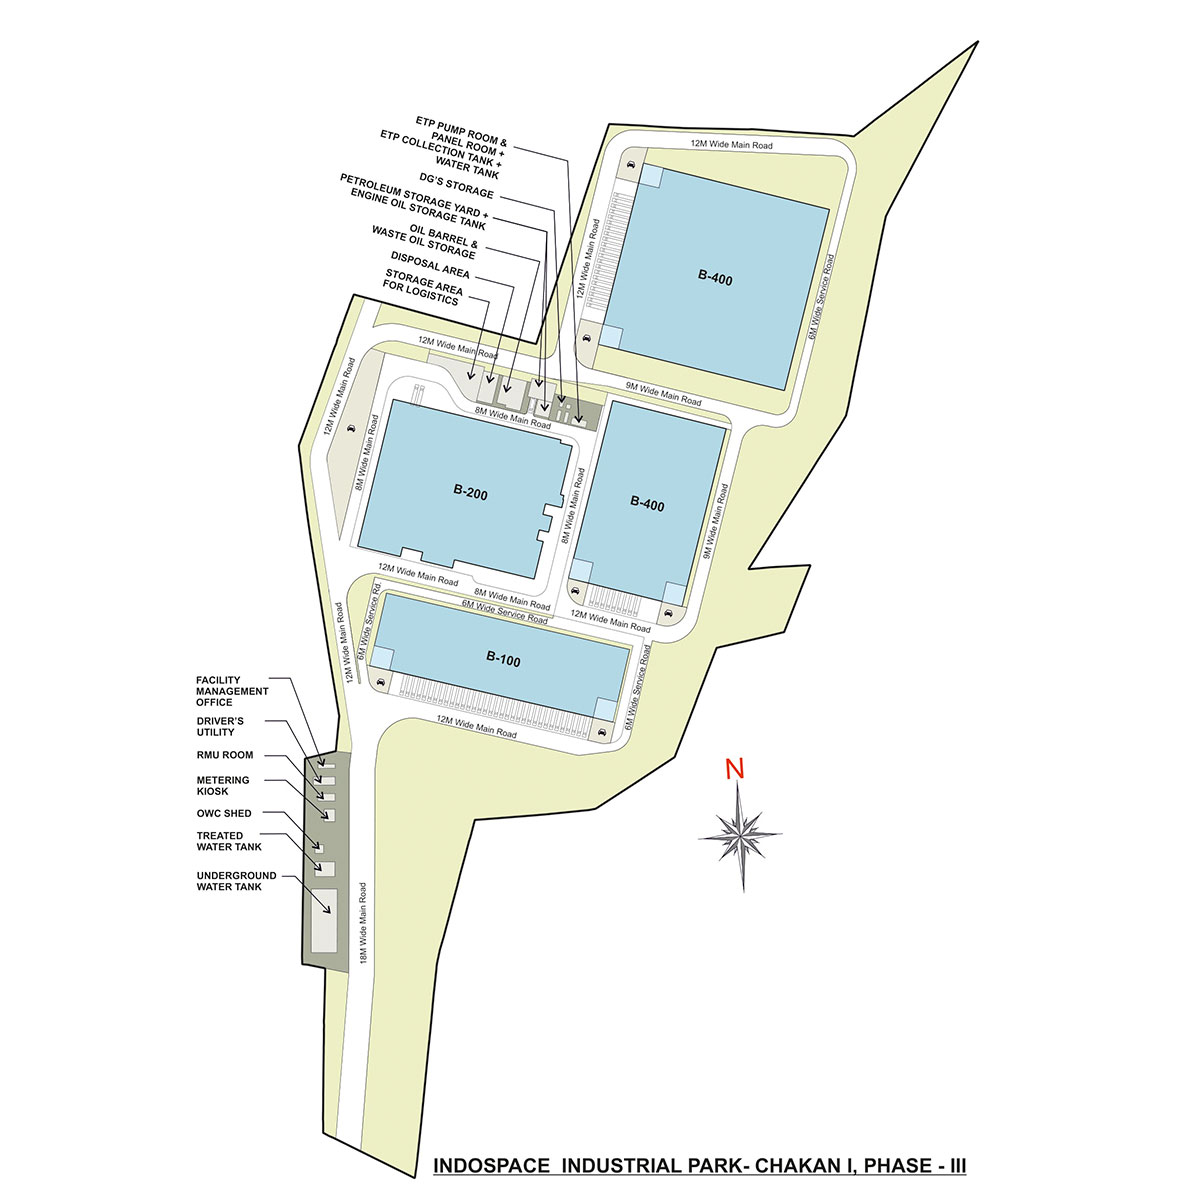 IndoSpace industrial Park Chakan I Phase II